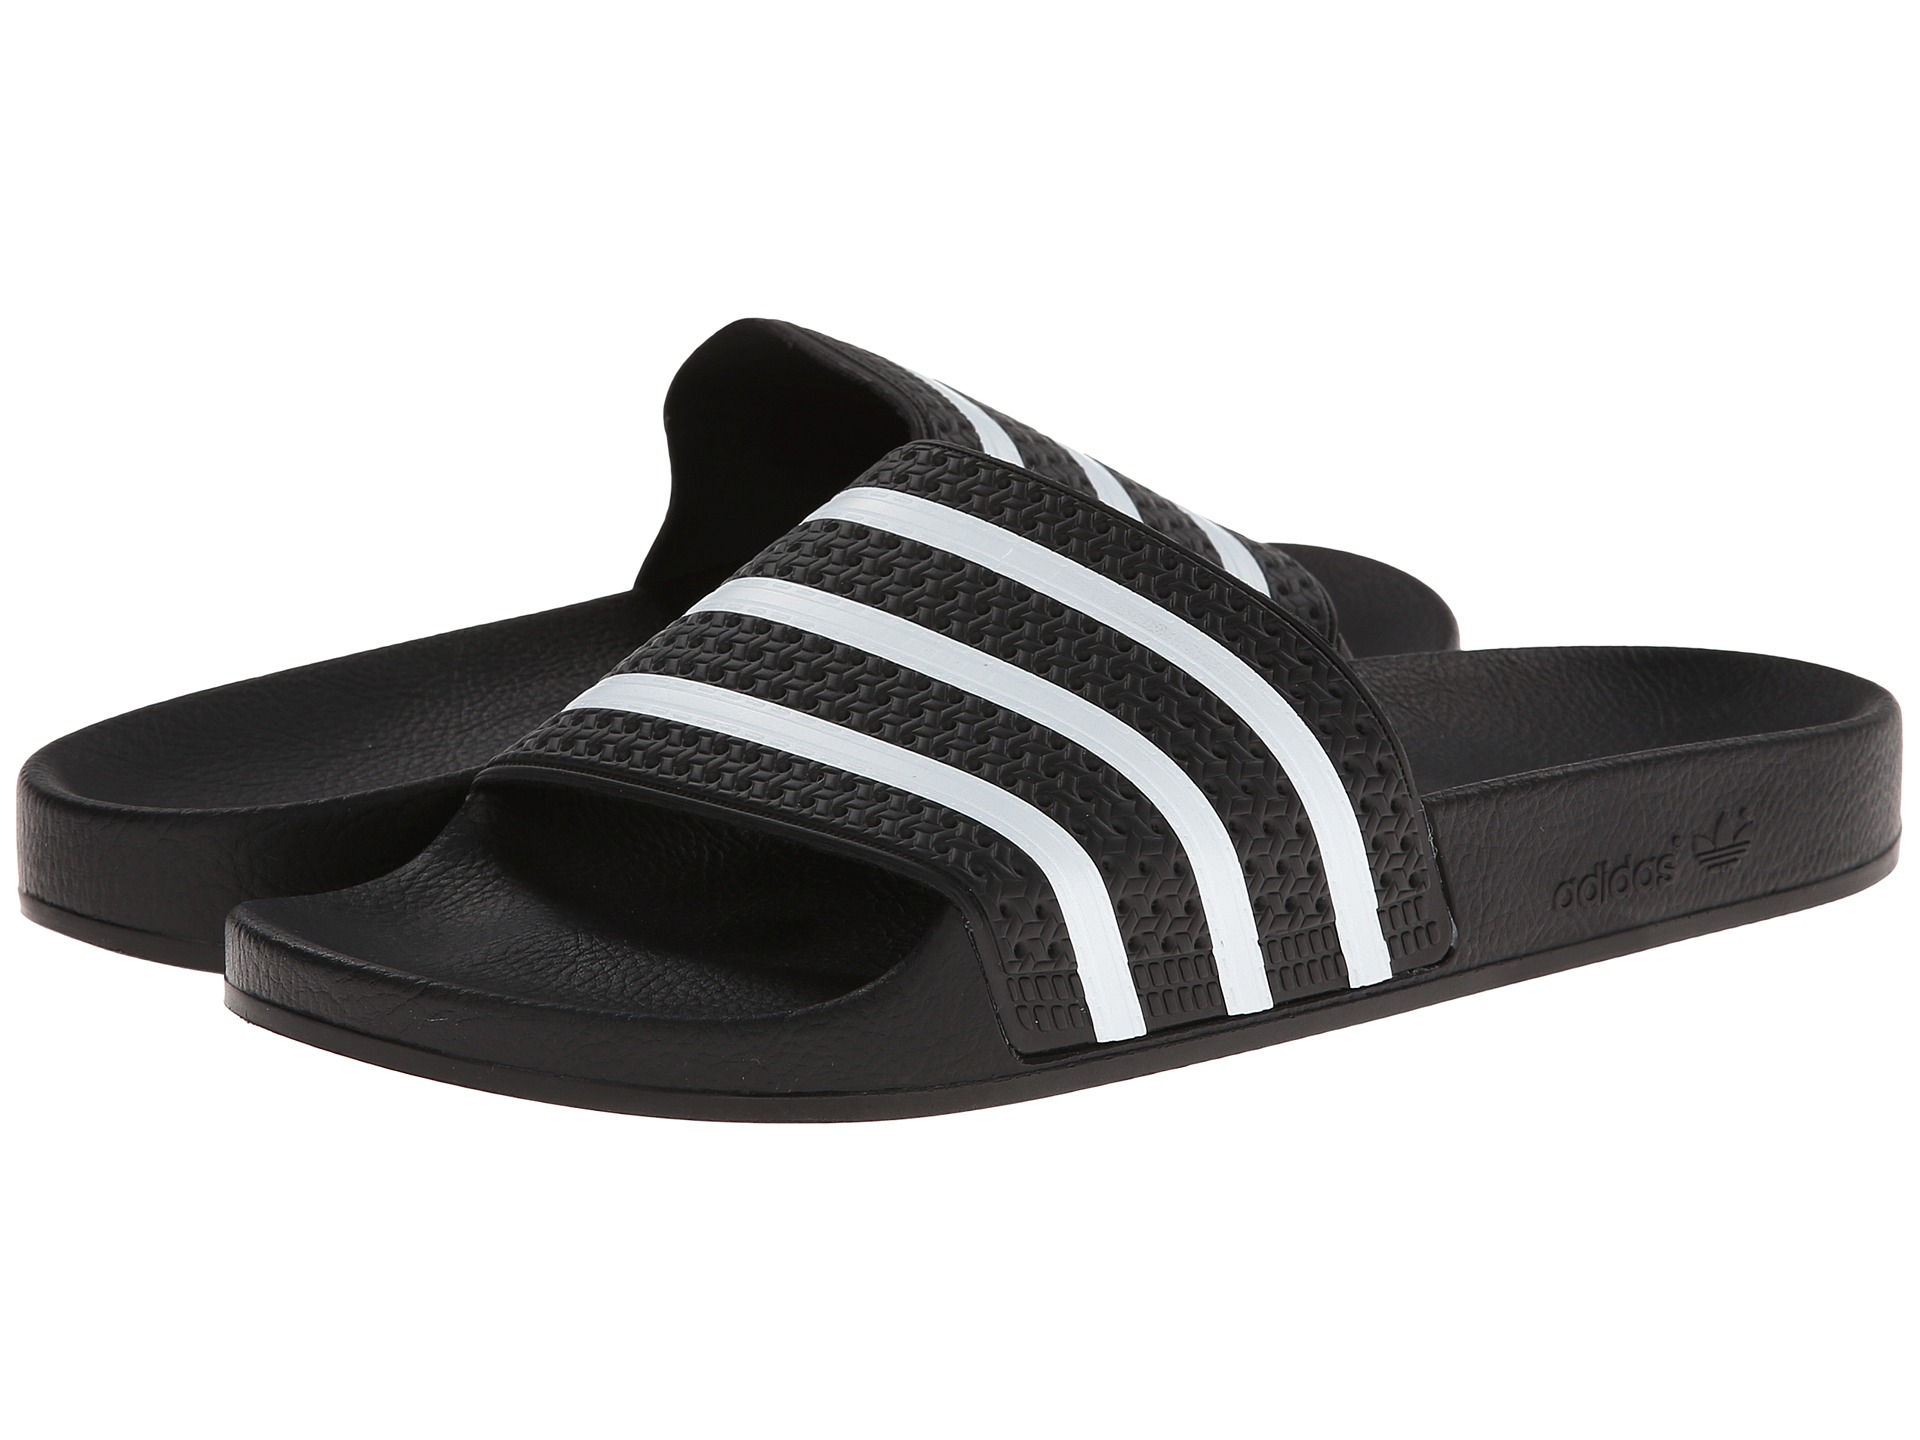 Creative Adidas Adilette W Womens Sandals In Black Gold